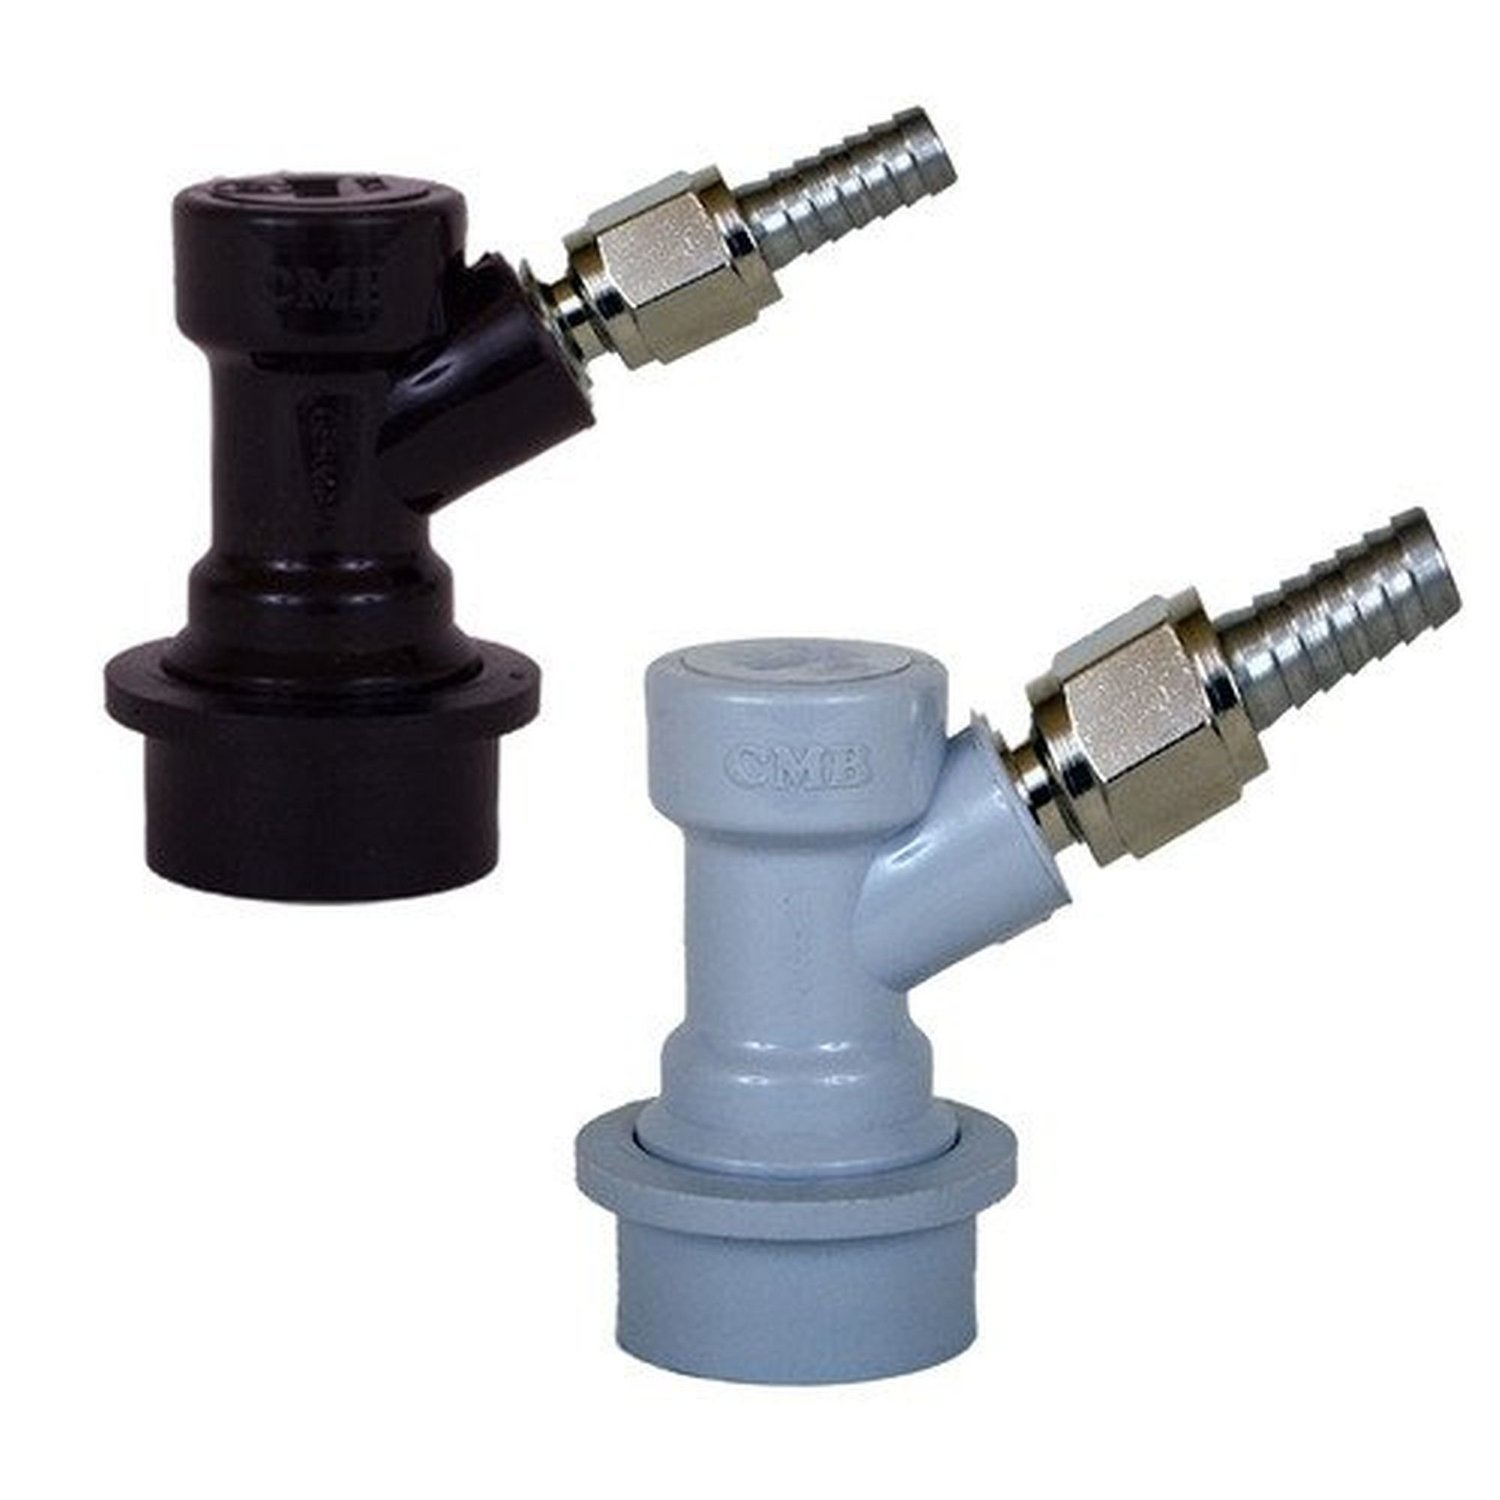 1//4 BARB 5//16 BARB for Ball Lock Pin Lock Home Brew keg Fitting Stainless Steel 304 Barded Swivel Nut Set of 2